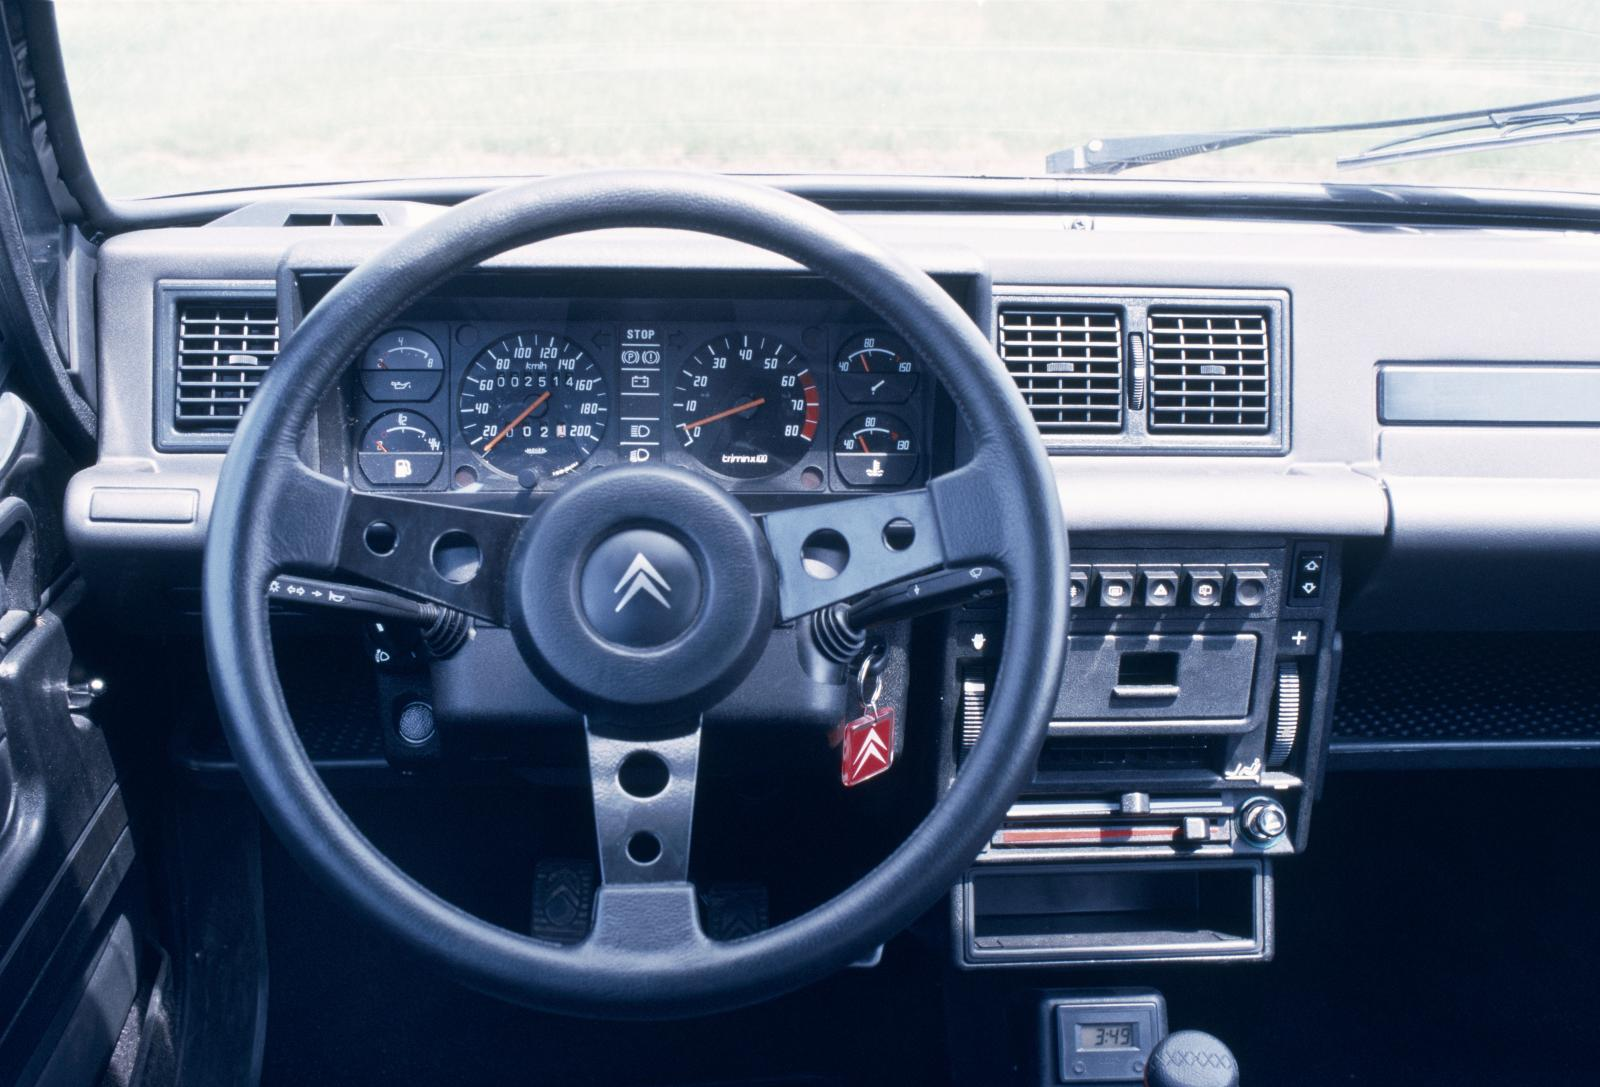 Visa GTi 1987 dashboard